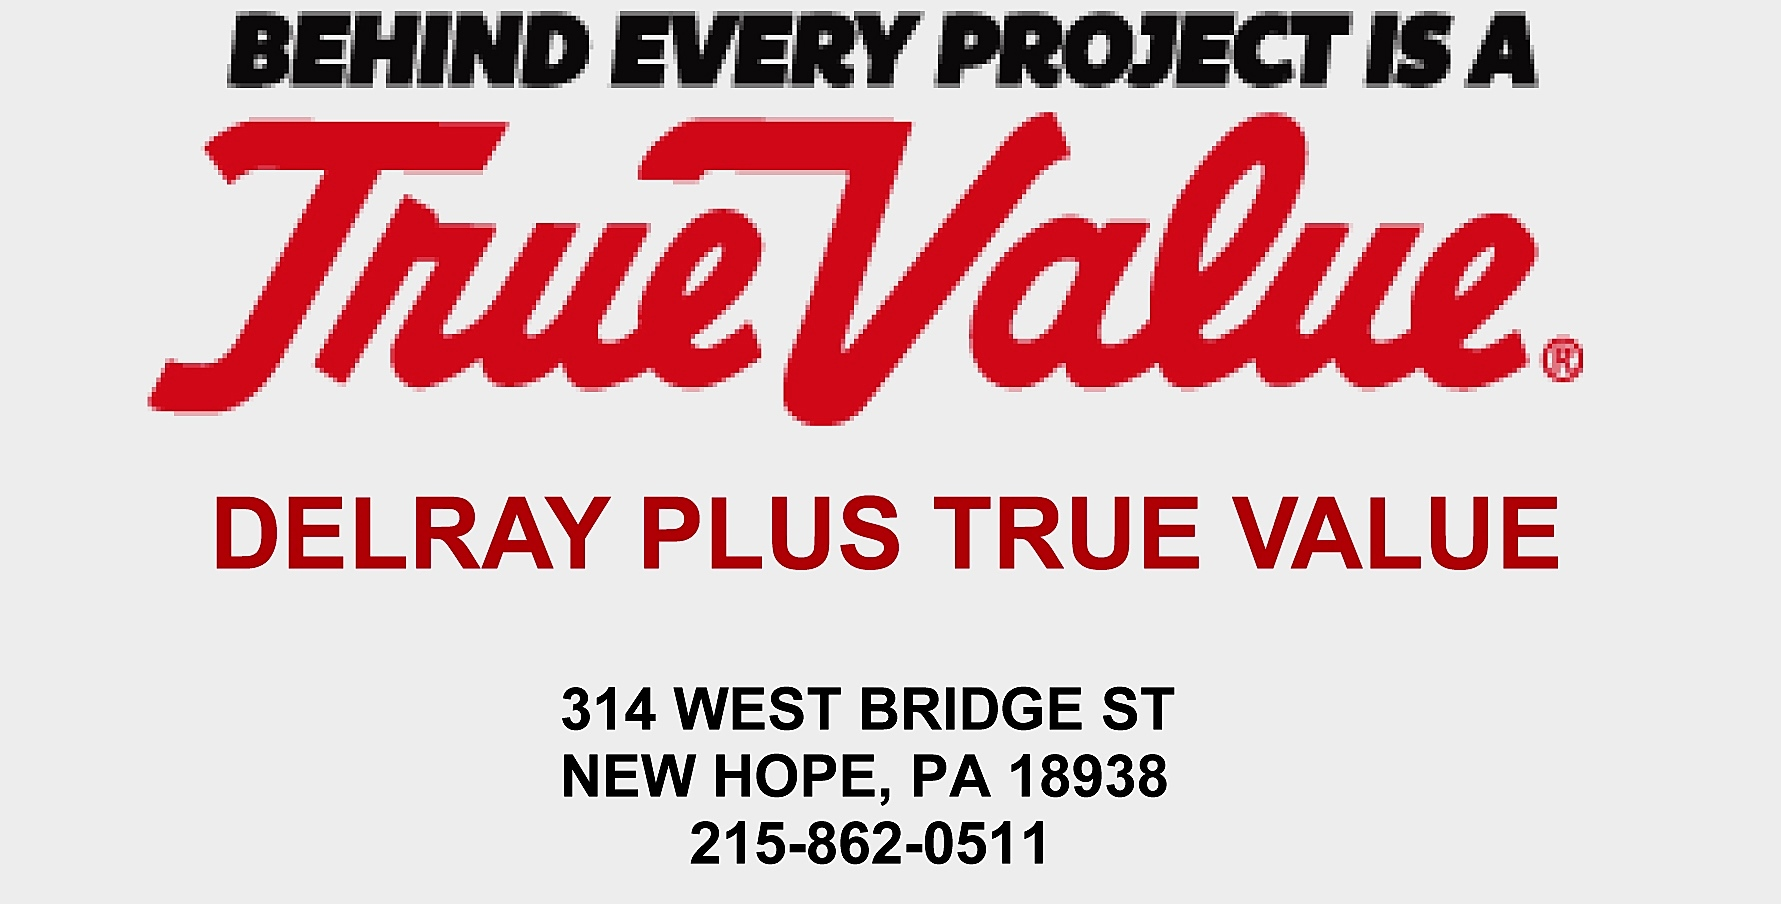 DELRAY PLUS TRUE VALUE